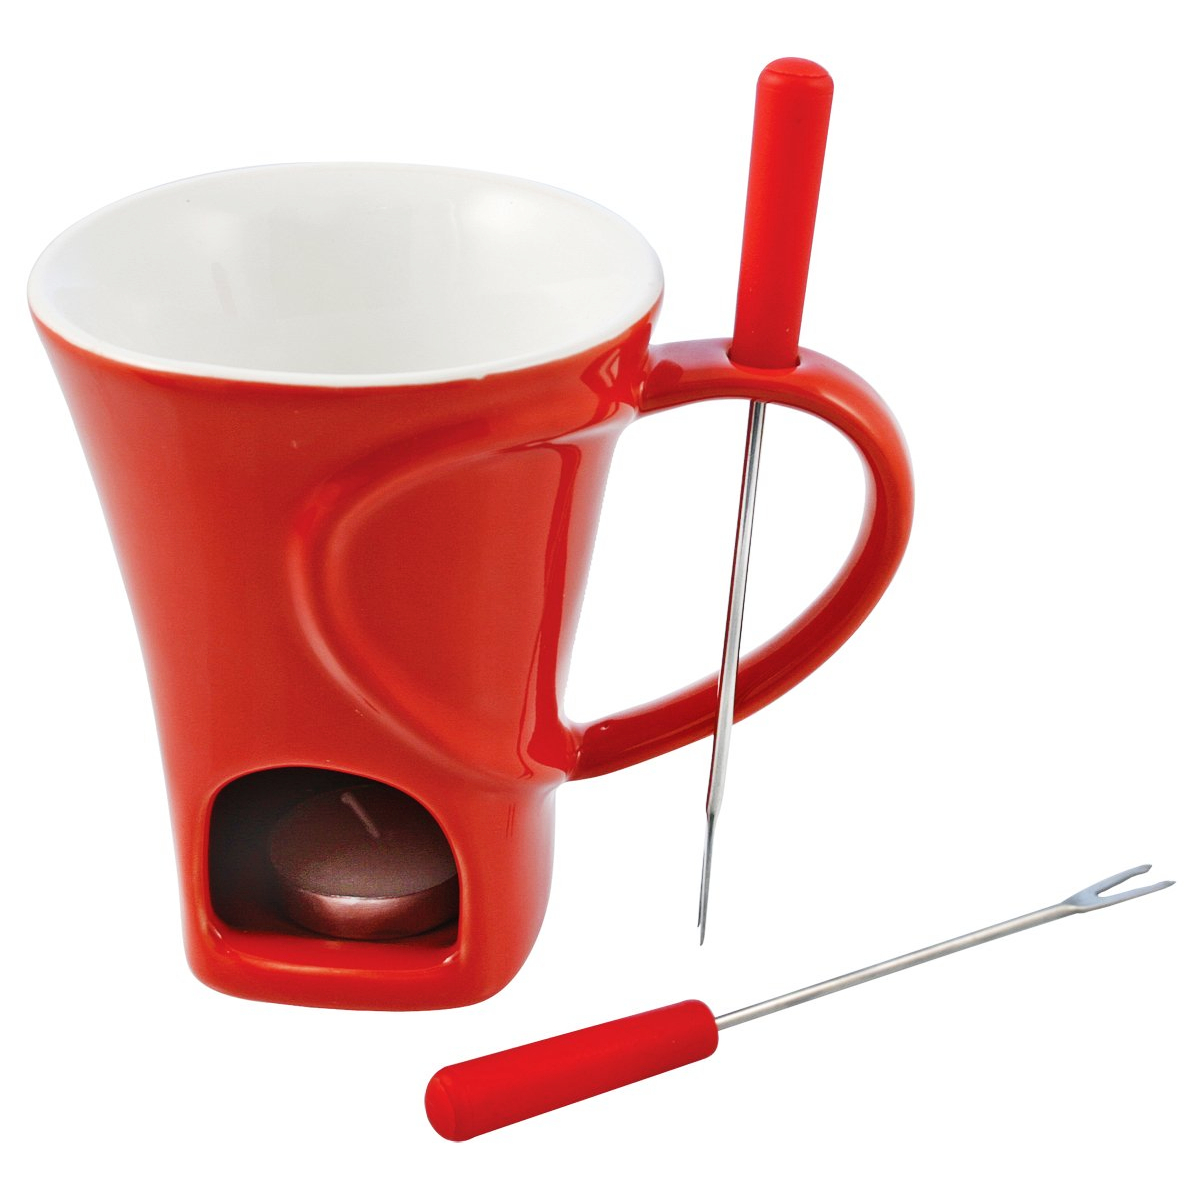 Swissmar Sweetheart 4 Piece Chocolate Fondue Mug Set